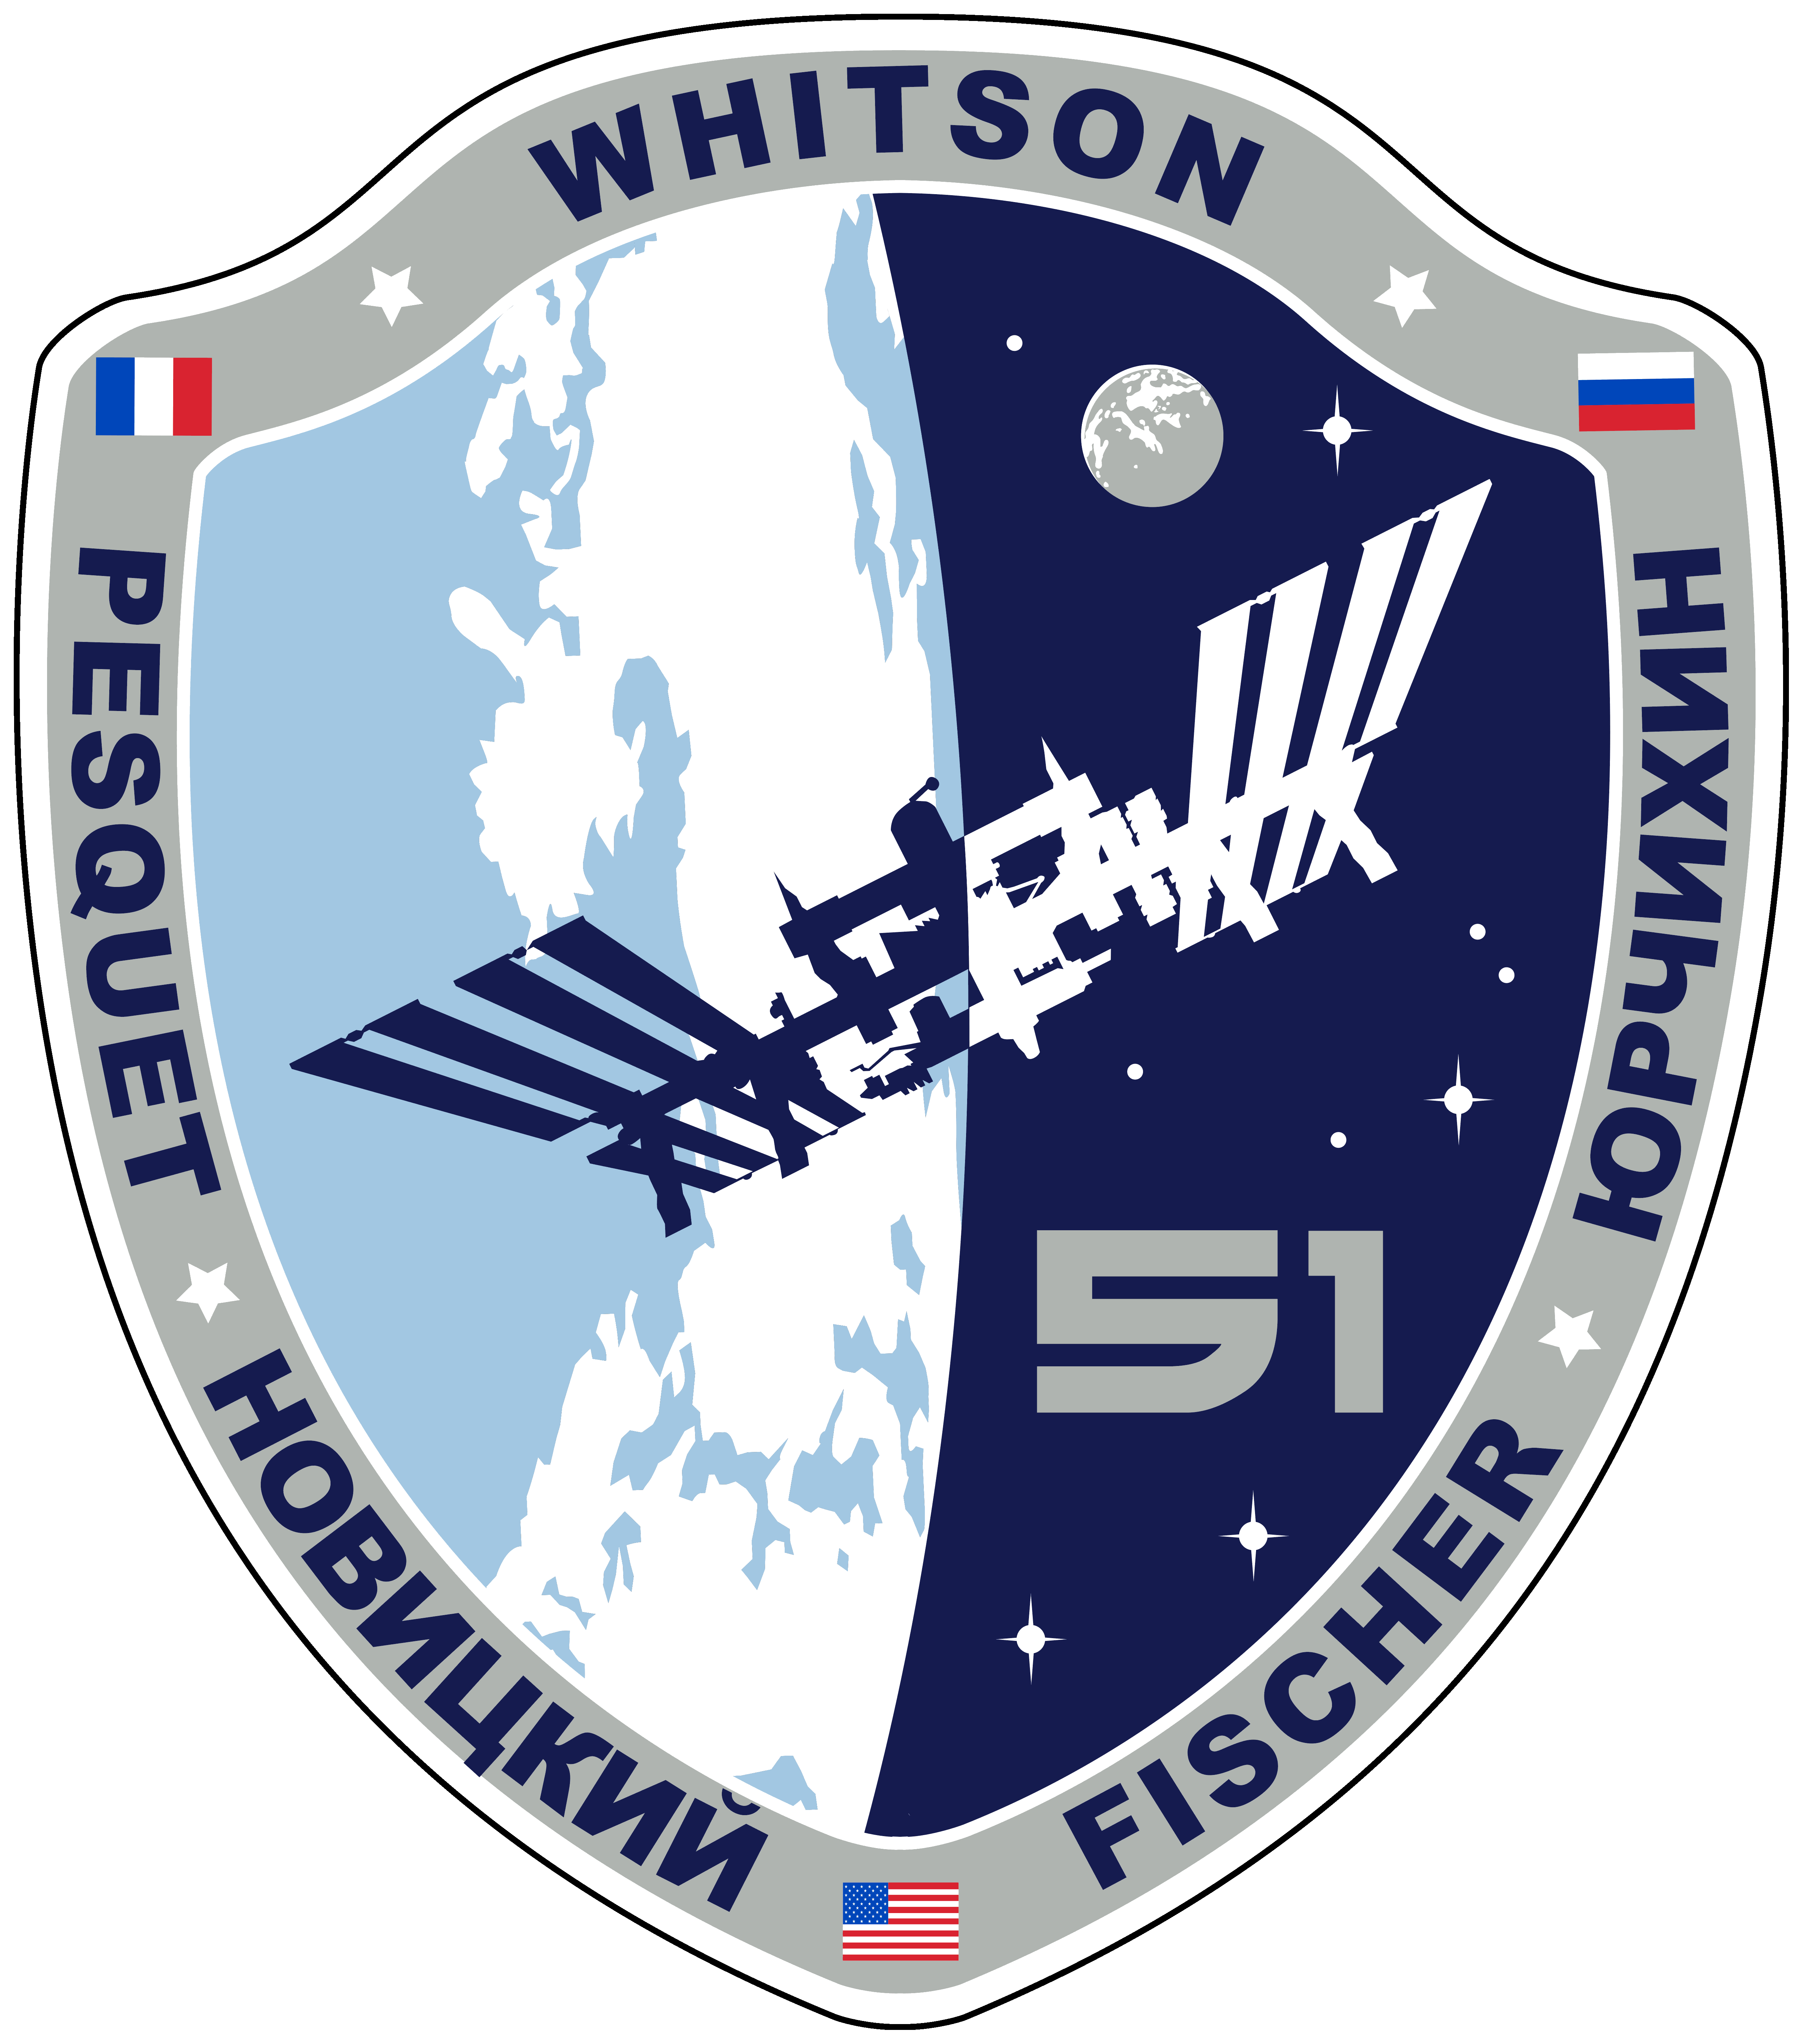 https://upload.wikimedia.org/wikipedia/commons/b/b1/ISS_Expedition_51_Patch.png